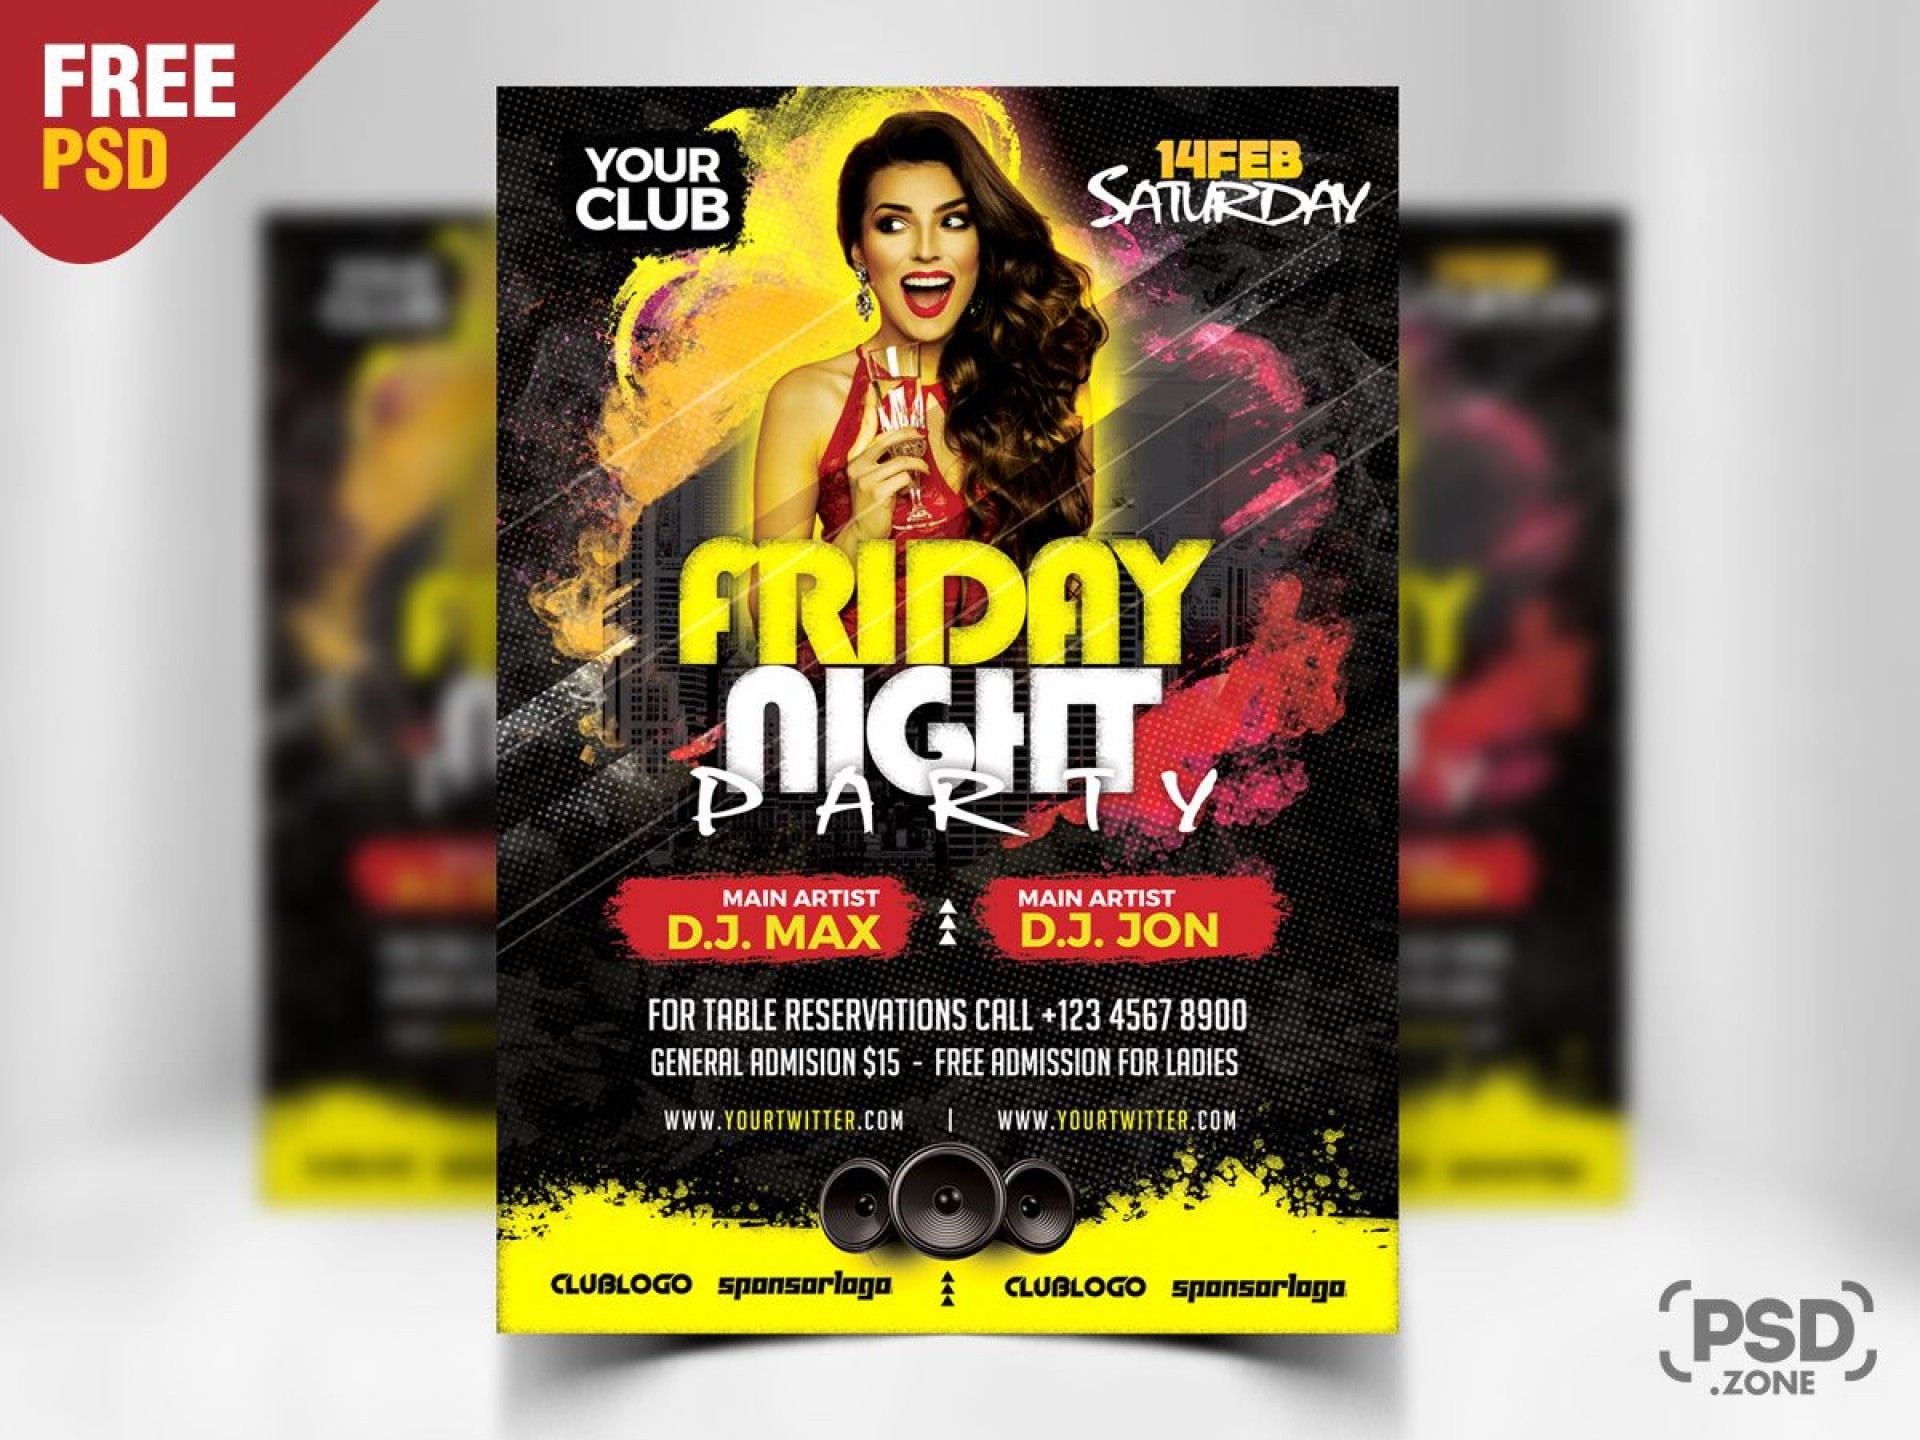 010 Beautiful Free Party Flyer Psd Template Download Inspiration  - Neon Glow1920